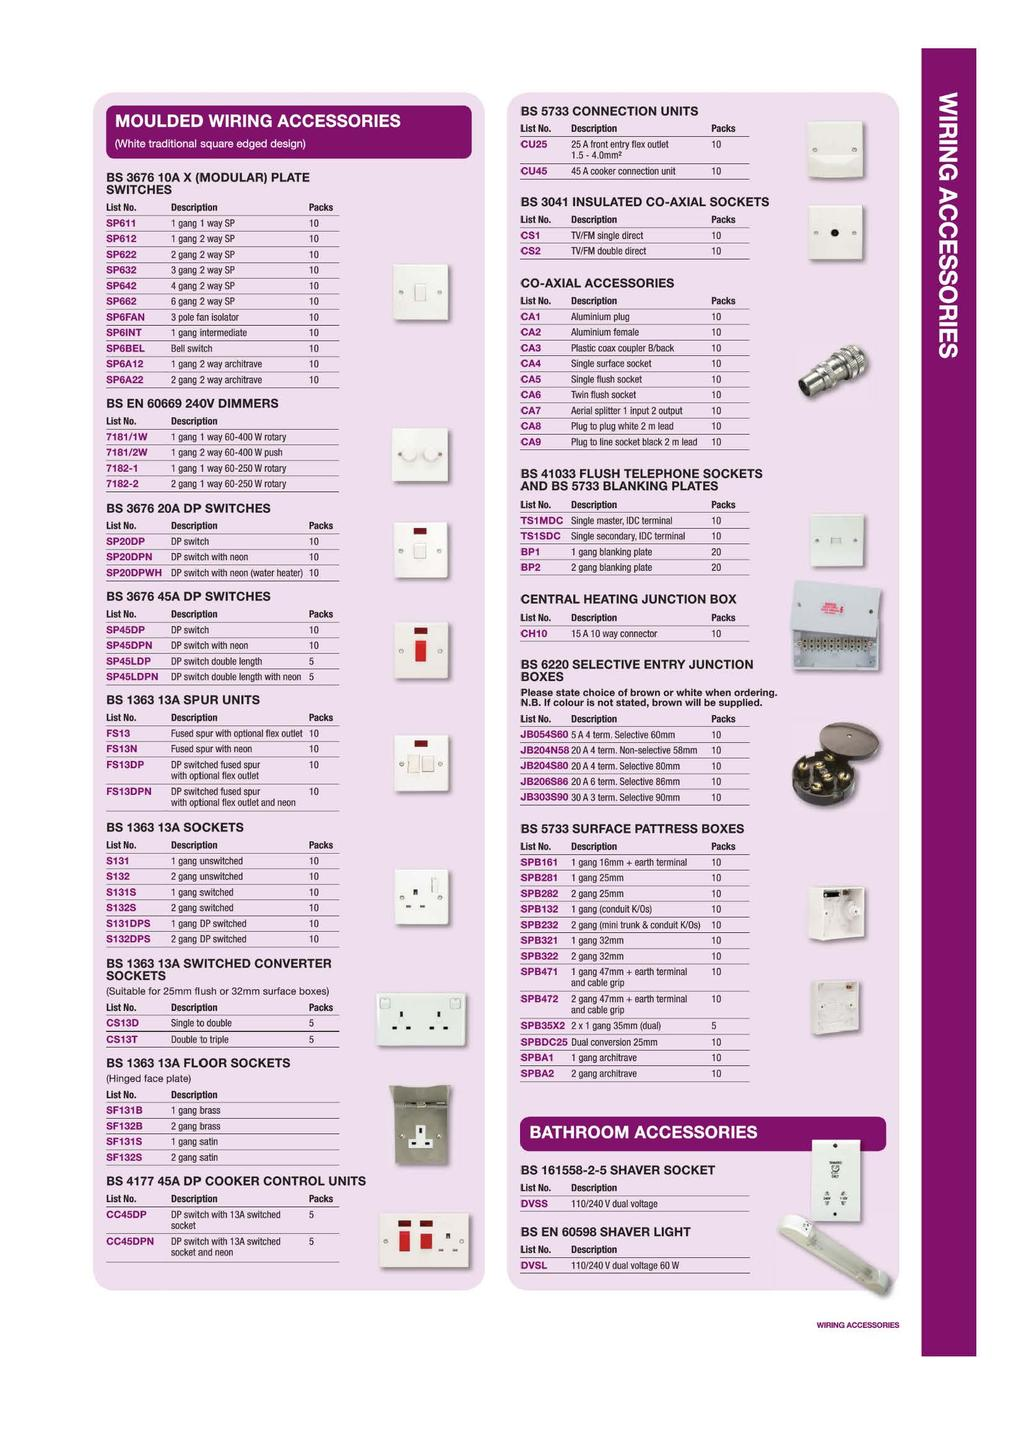 I Ell O Moulded Wiring Accessories Bs 5733 Connection Units Mk Devices Catalogue 2016 White Tradrllonal Square Edged Design 3676 A X Modular Plate Switches